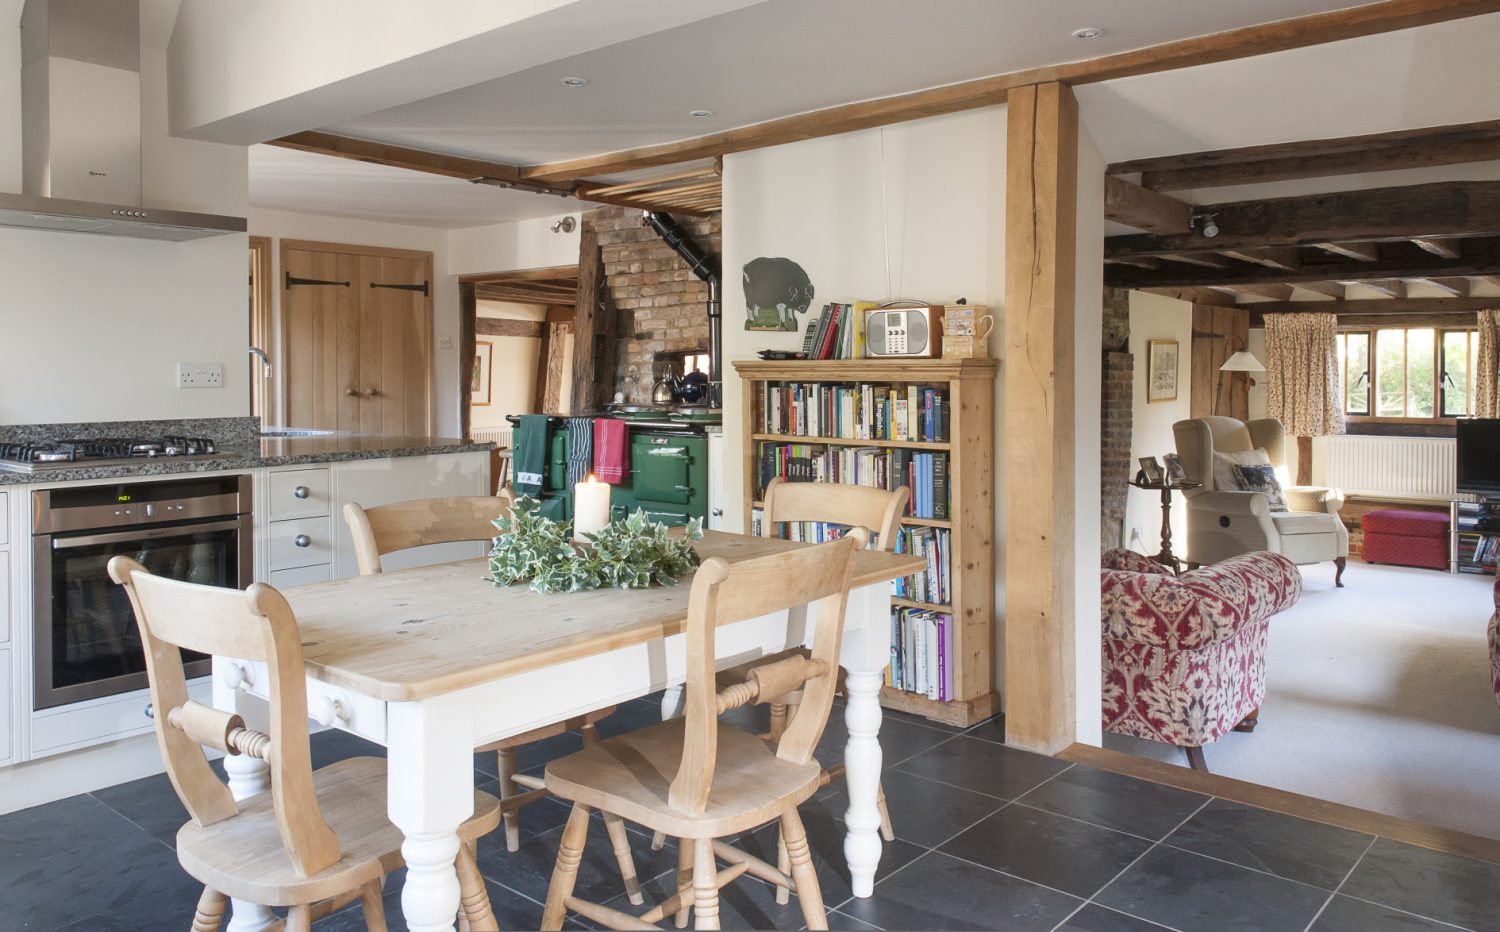 The spacious kitchen was designed and installed by Schofield & Crafter